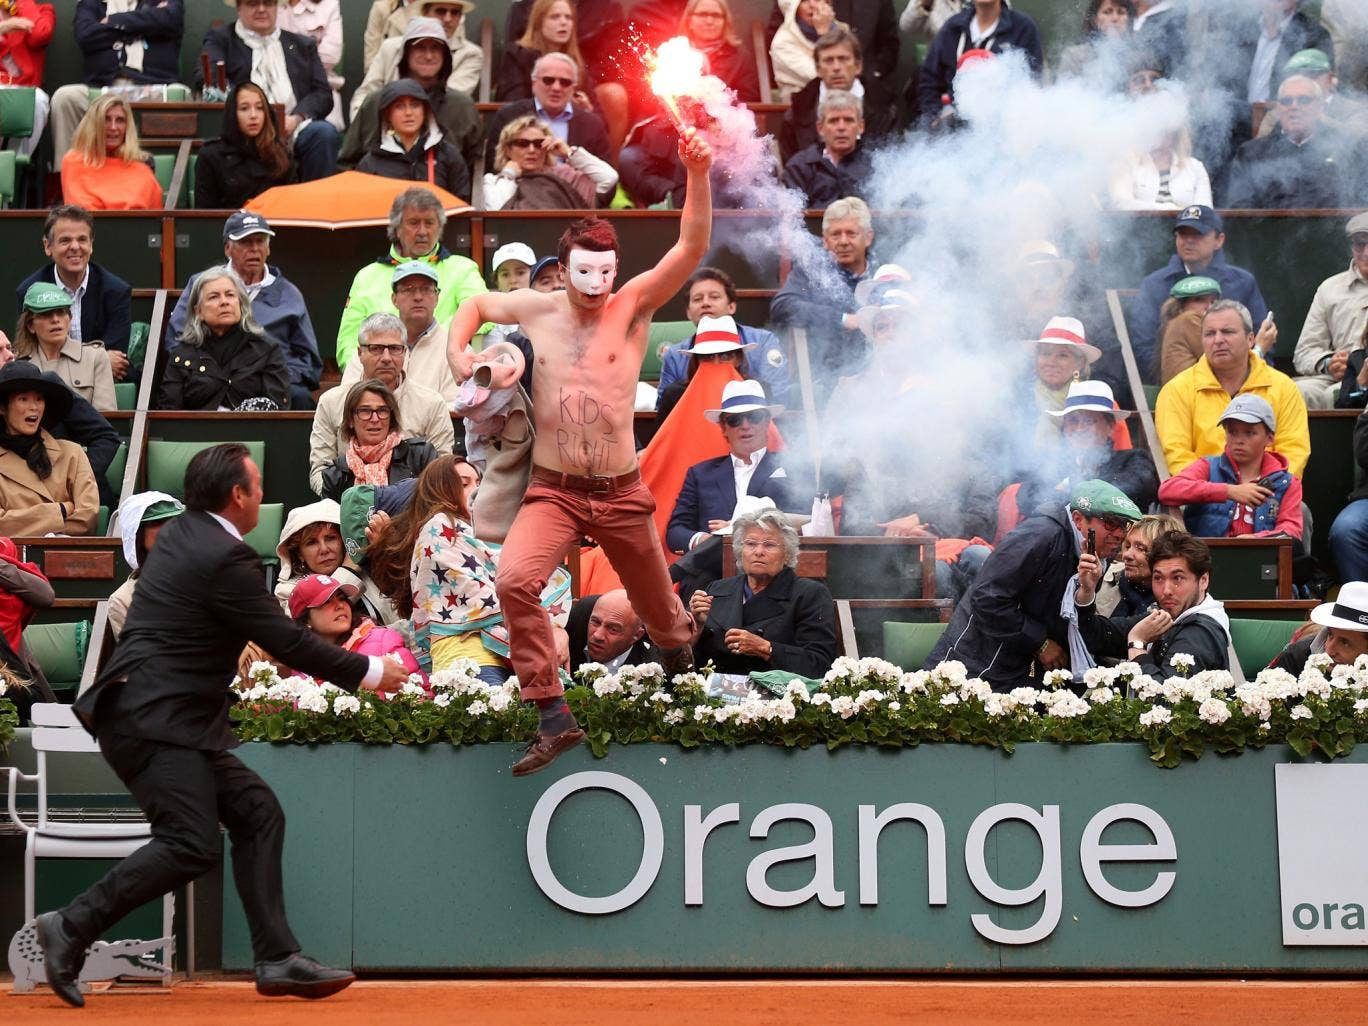 A protester runs onto court with a lit flare before the start of a game in the Men's Singles final